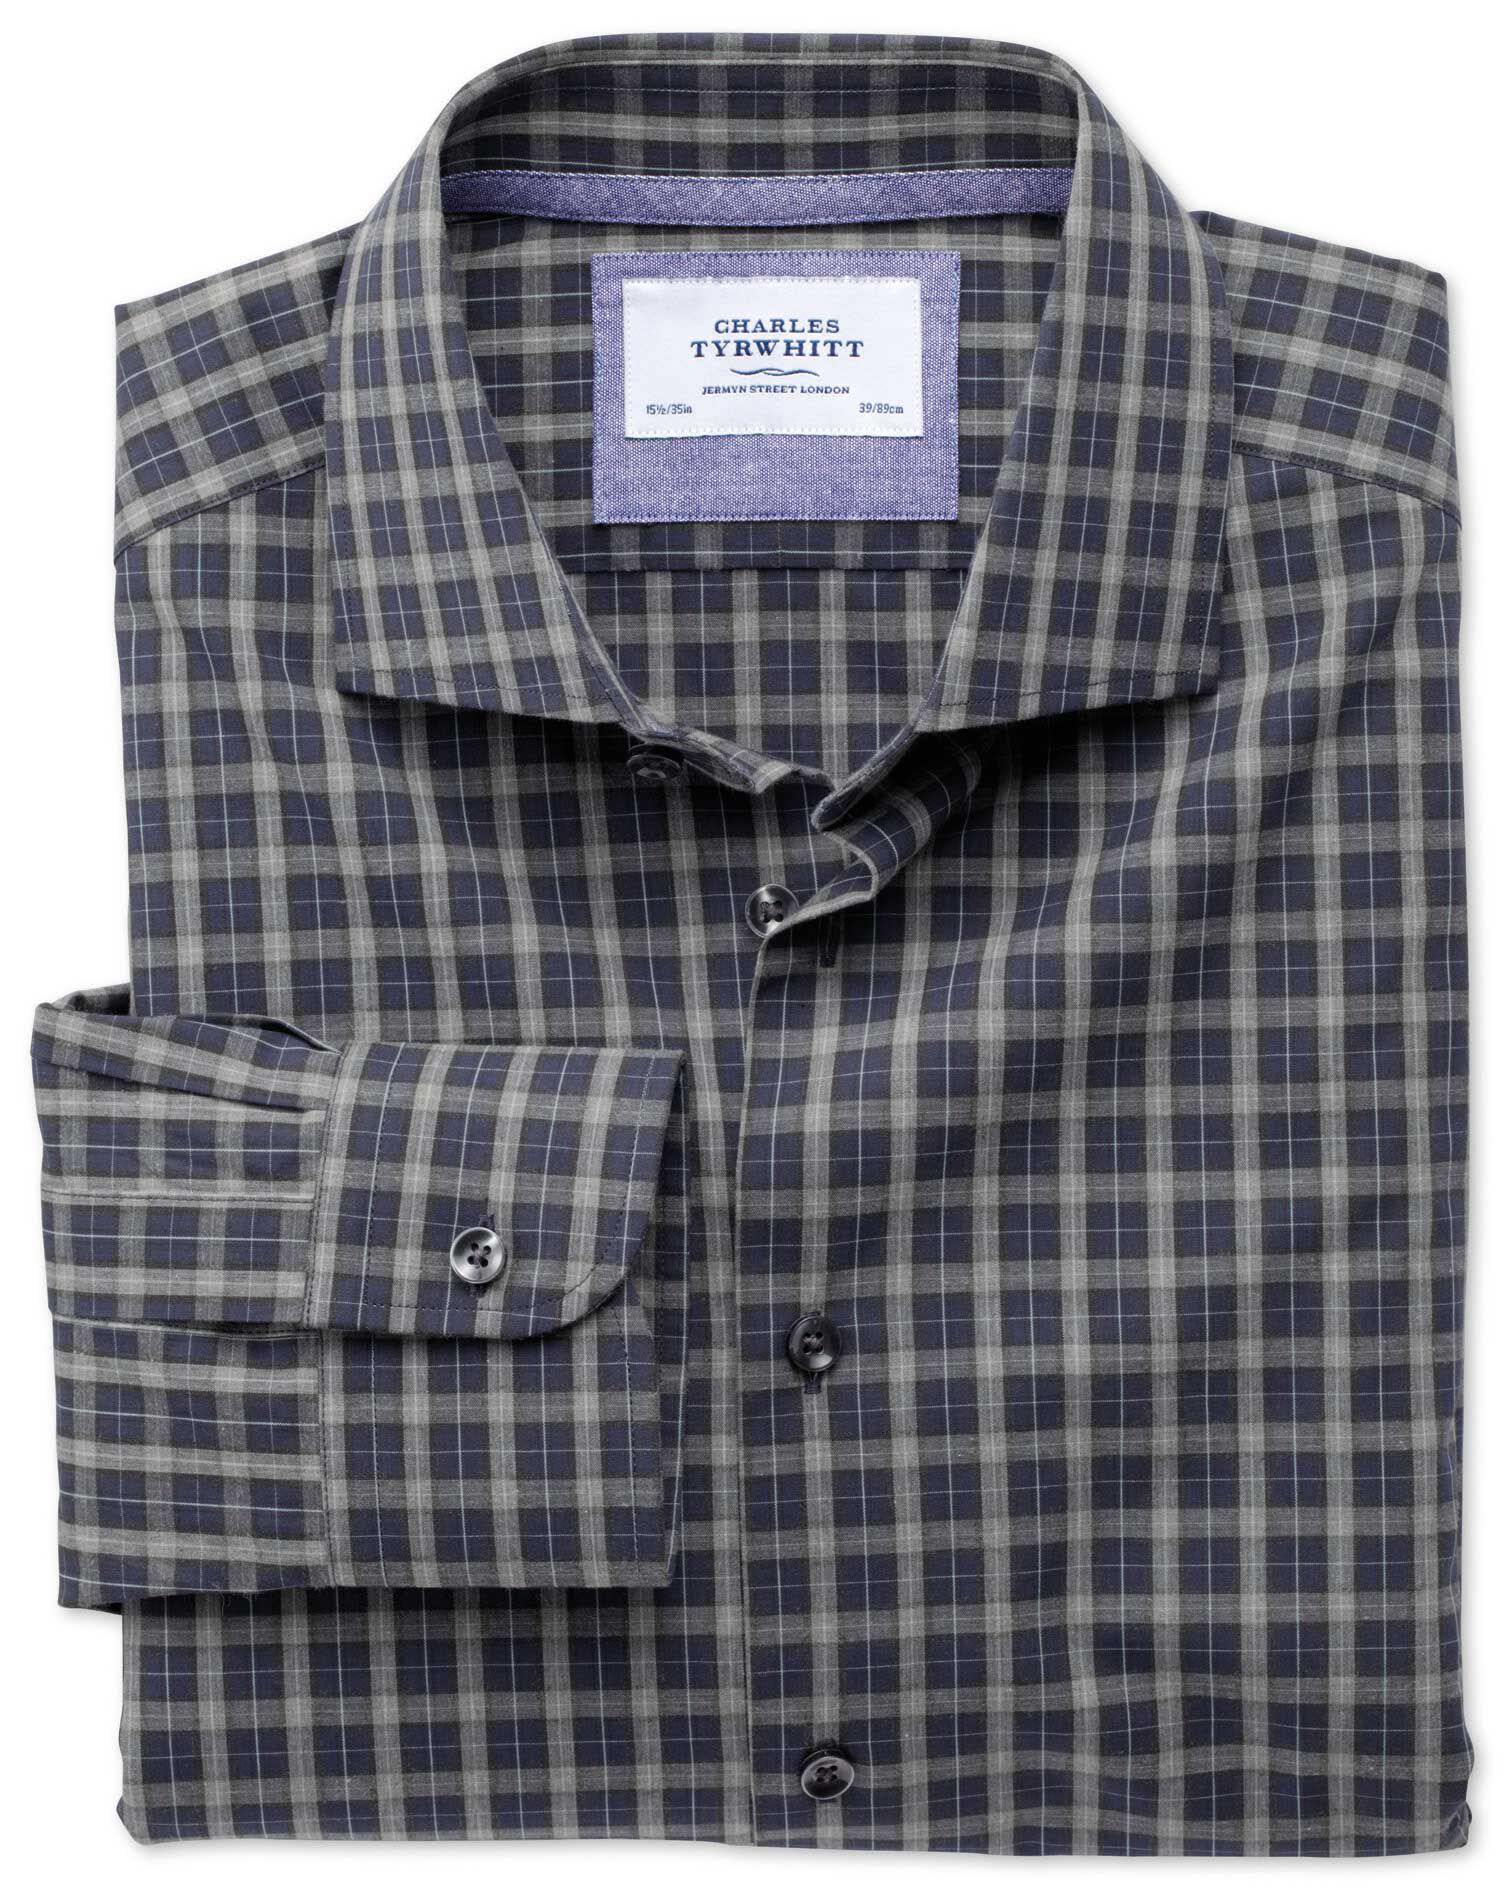 Extra Slim Fit Semi-Cutaway Collar Business Casual Melange Navy and Grey Check Egyptian Cotton Forma